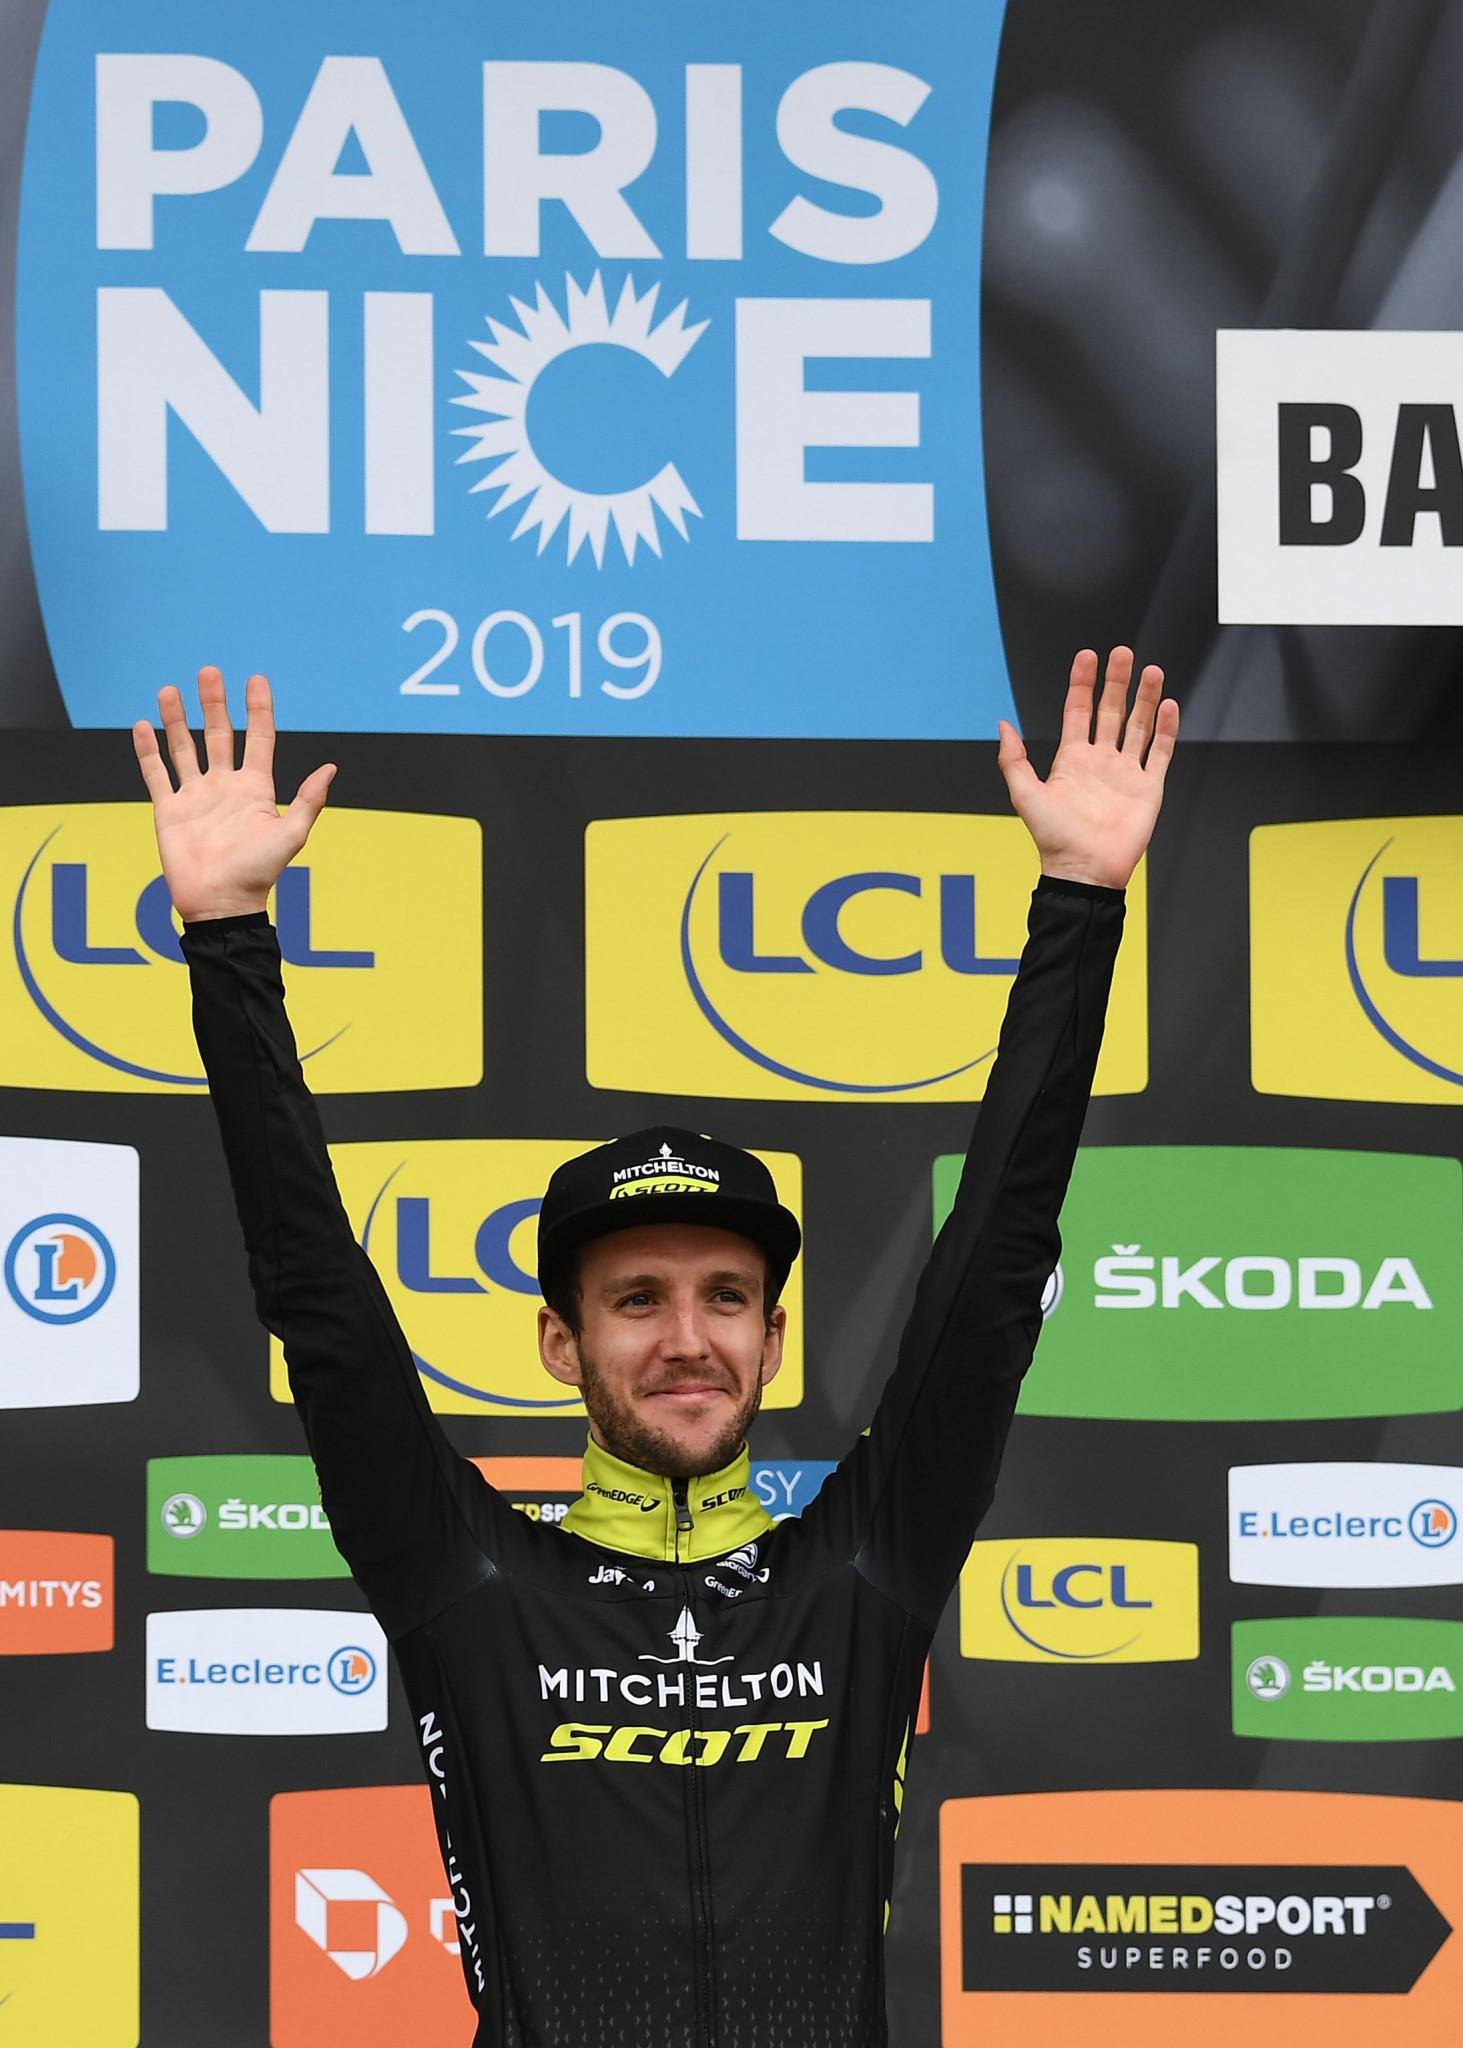 Simon Yates celebrates his time trial win on the fifth stage of the Paris-Nice race ©Getty Images